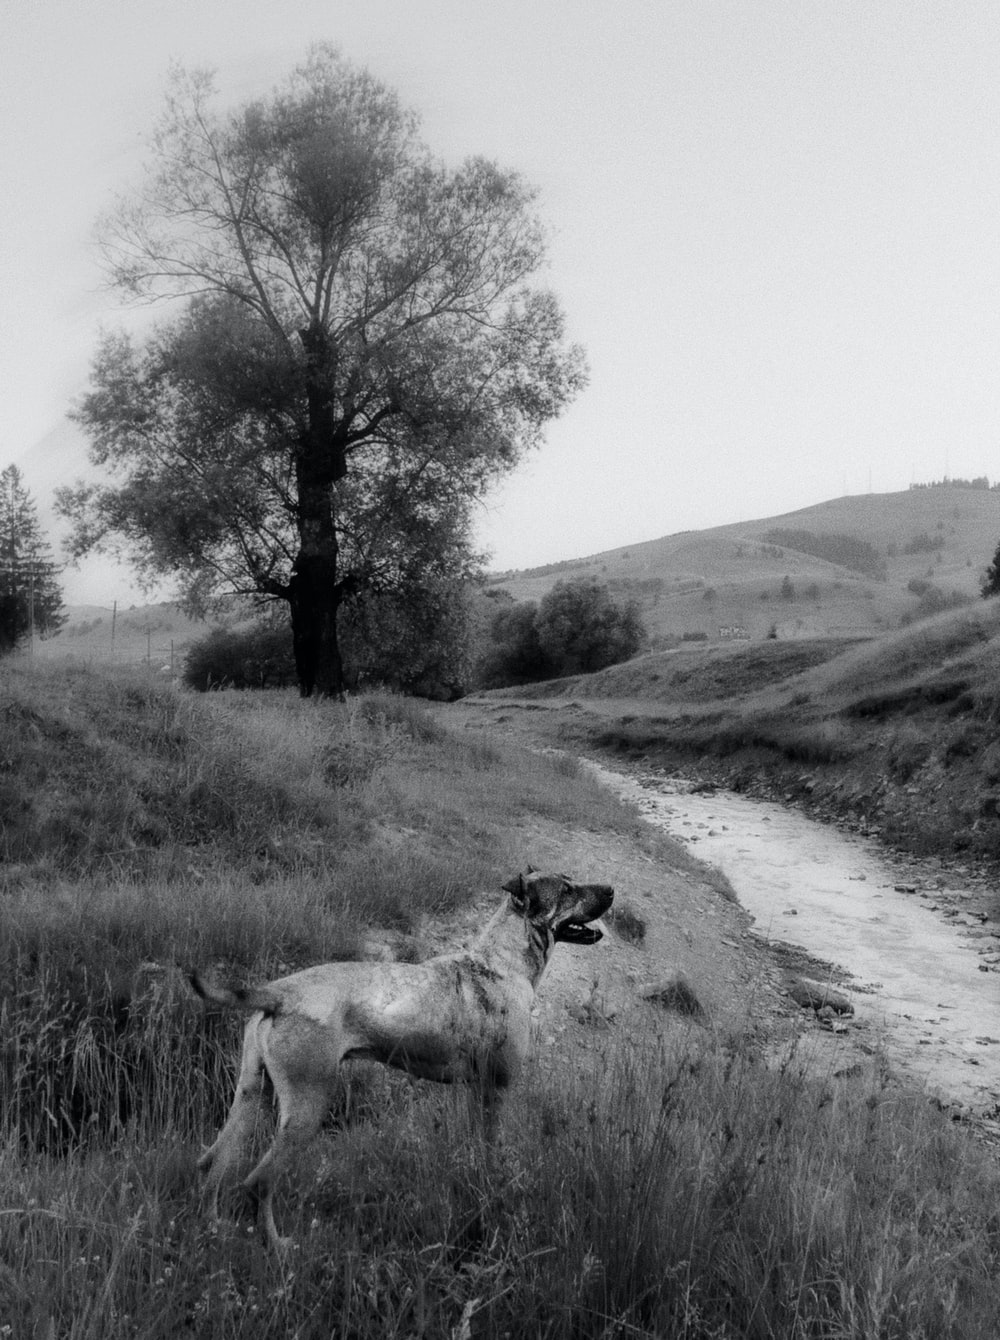 grayscale photo of dog on grass field